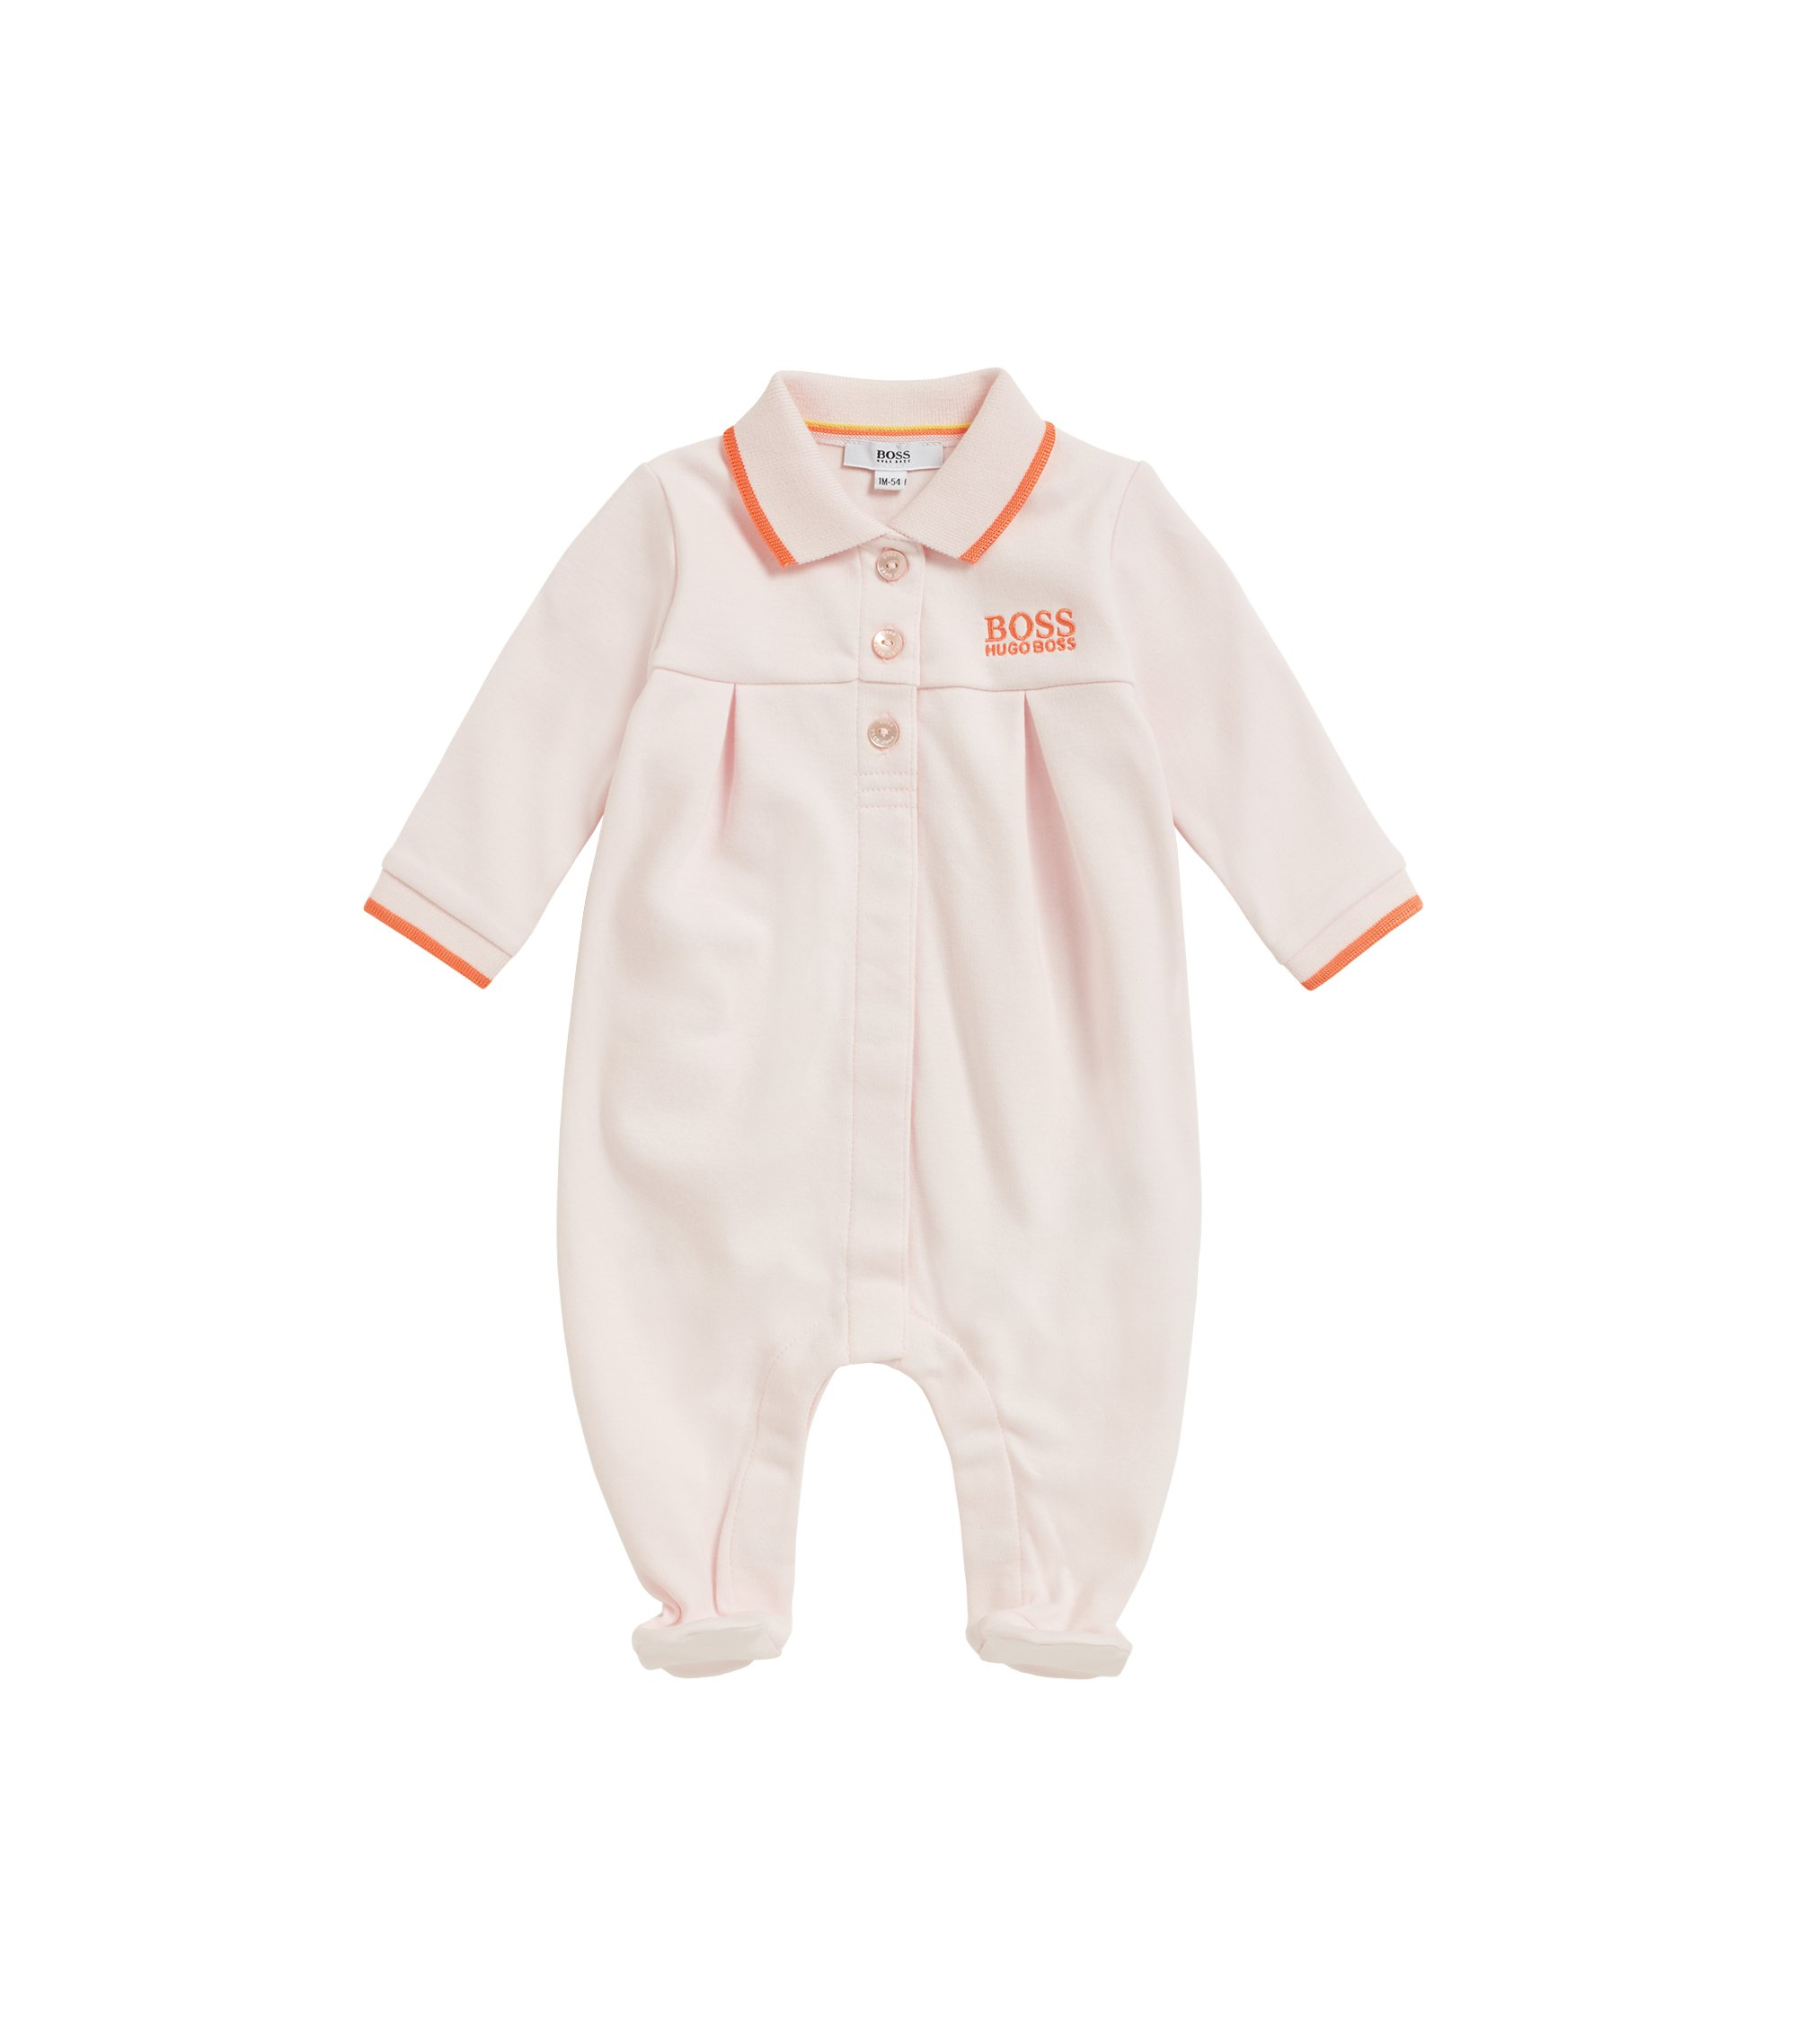 Baby girl sleepsuit in interlock cotton, light pink